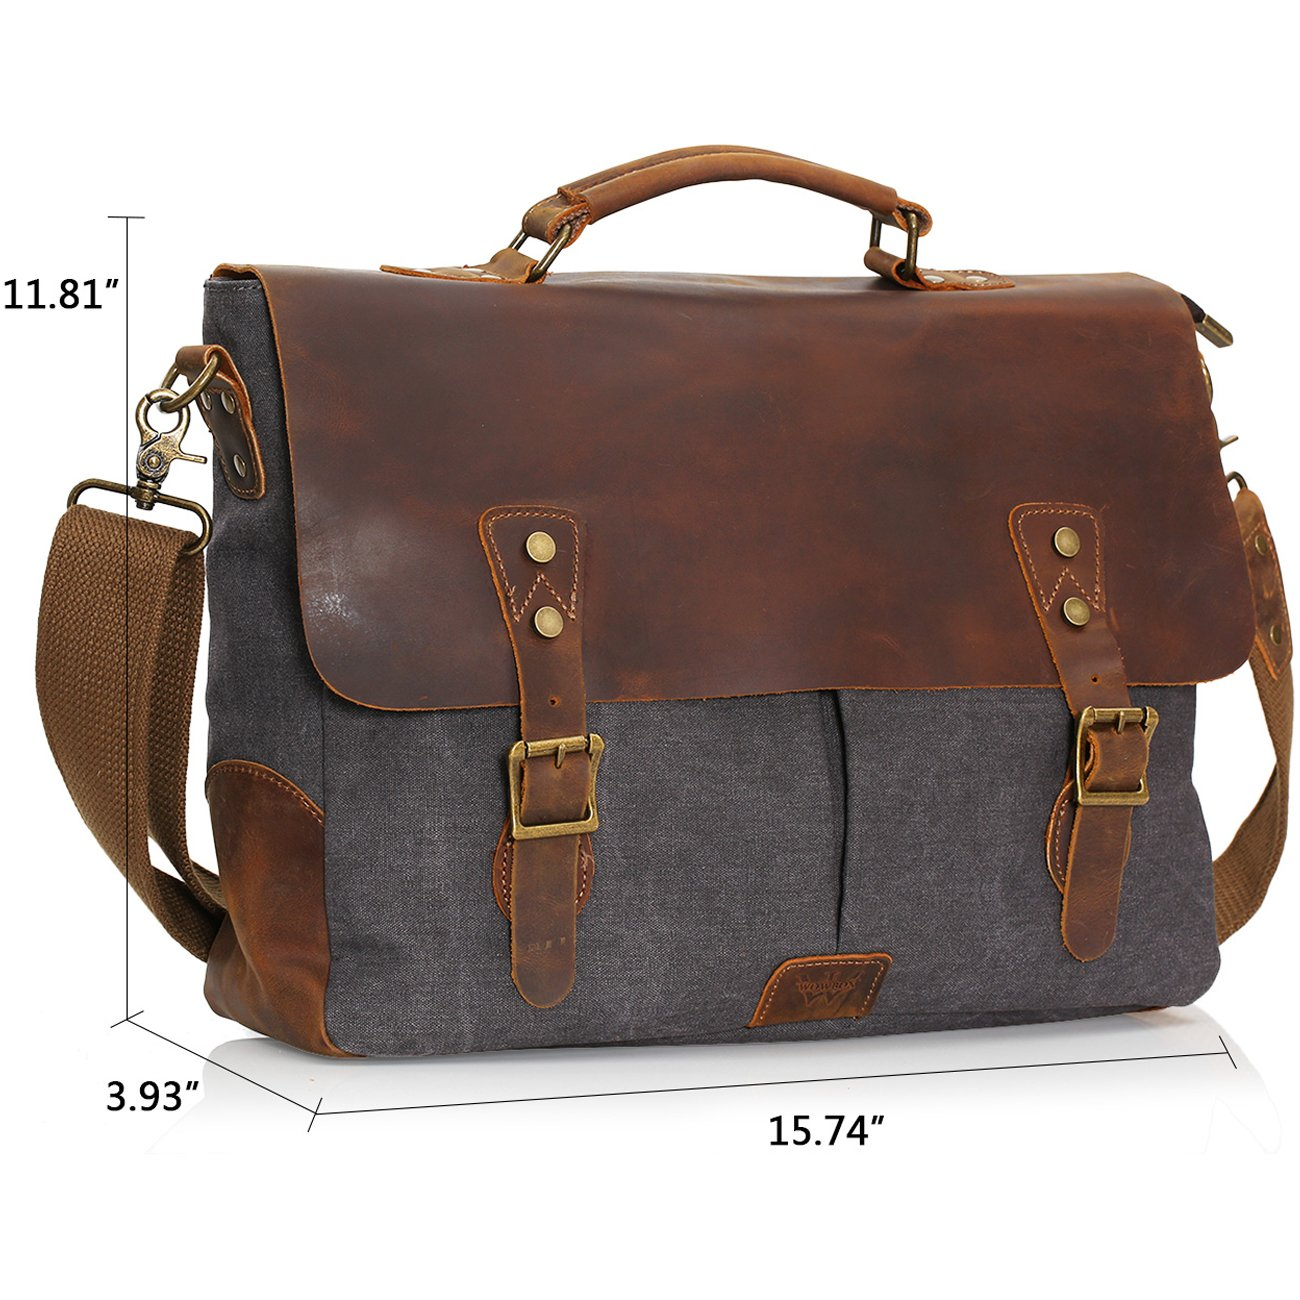 Wowbox Messenger Satchel Bag for Men and Women,Vintage Canvas Real Leather 14-inch Laptop Briefcase for Everday use 13 x10.5 x10.5 W H x 4.1 Vintage Canvas Real Leather 14-inch Laptop Briefcase for Everday use 13 Gray H L L x 4.1 W Gray